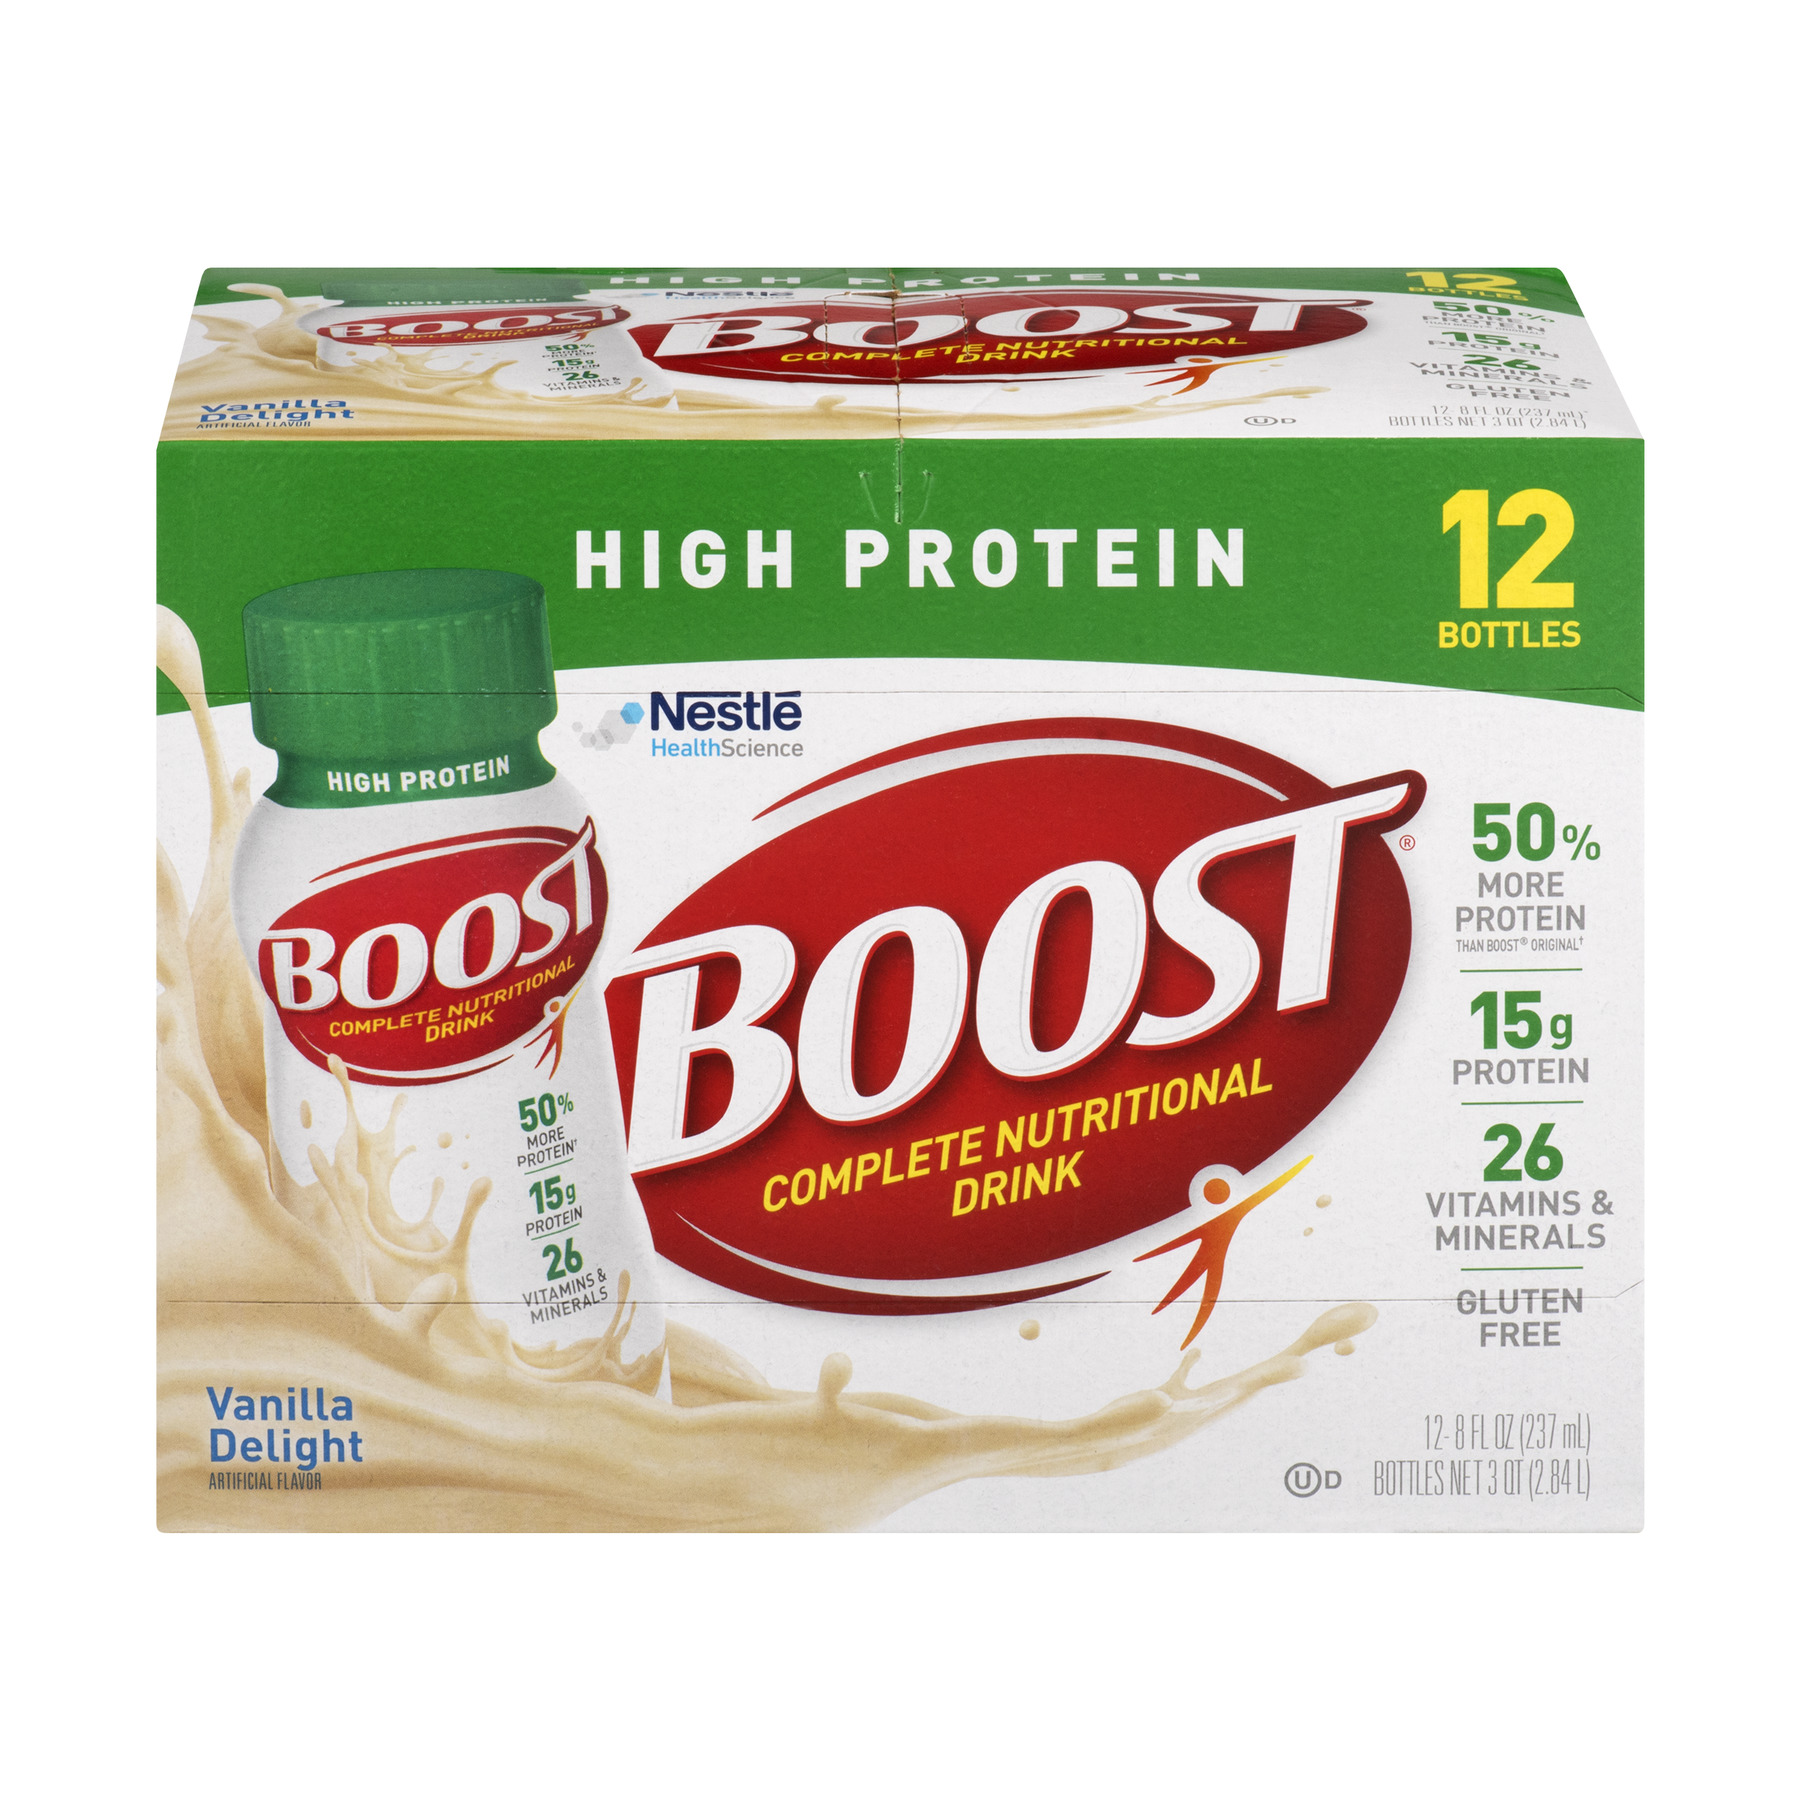 Boost High Protein Complete Nutritional Drink, Vanilla Delight, 8 Fl oz, 12 Ct